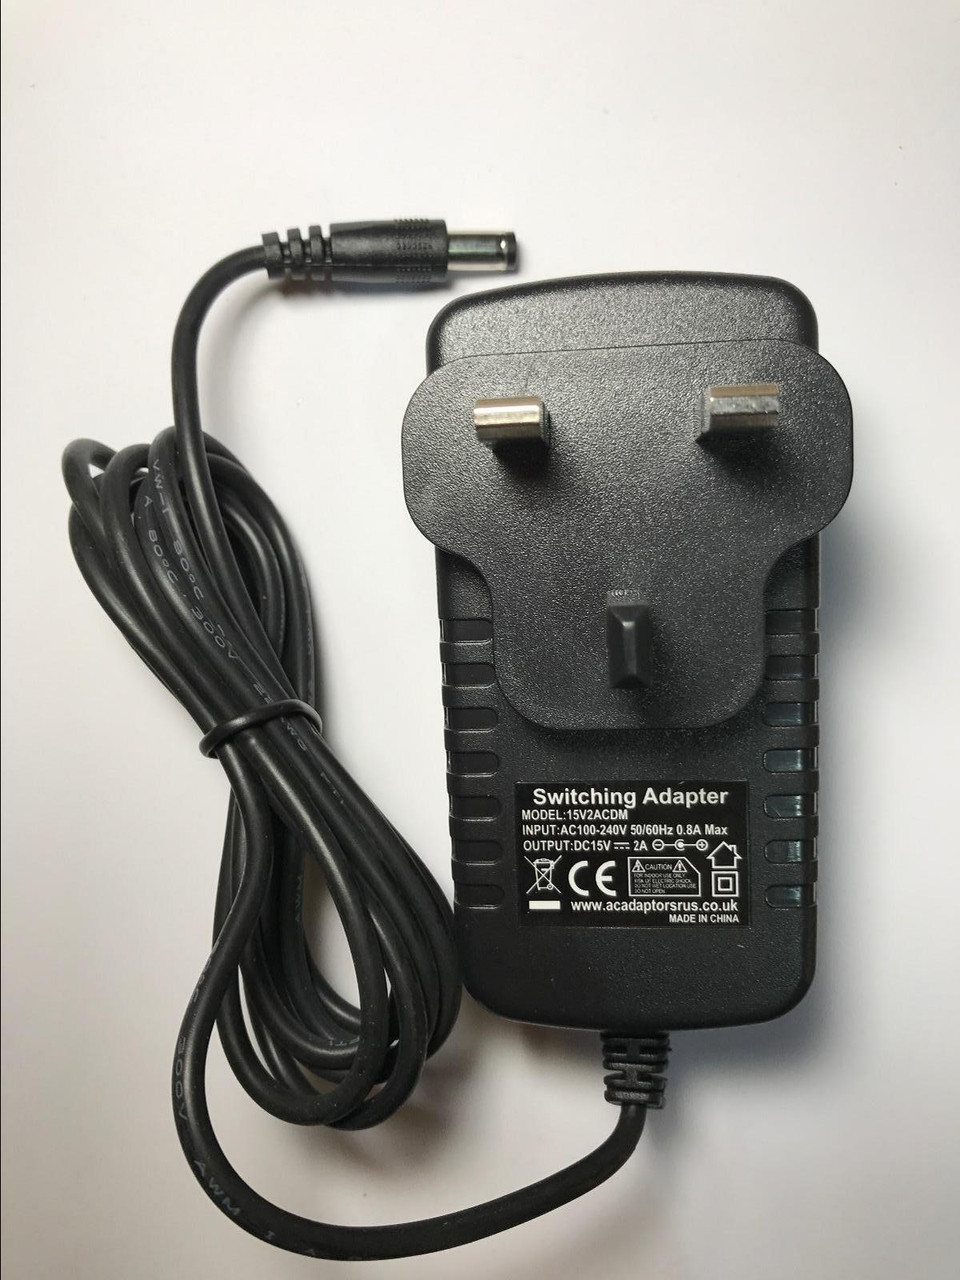 Replacement AC-DC Power Adaptor for 15V 1.0A for Plustek Opticbook 3800 Scanner